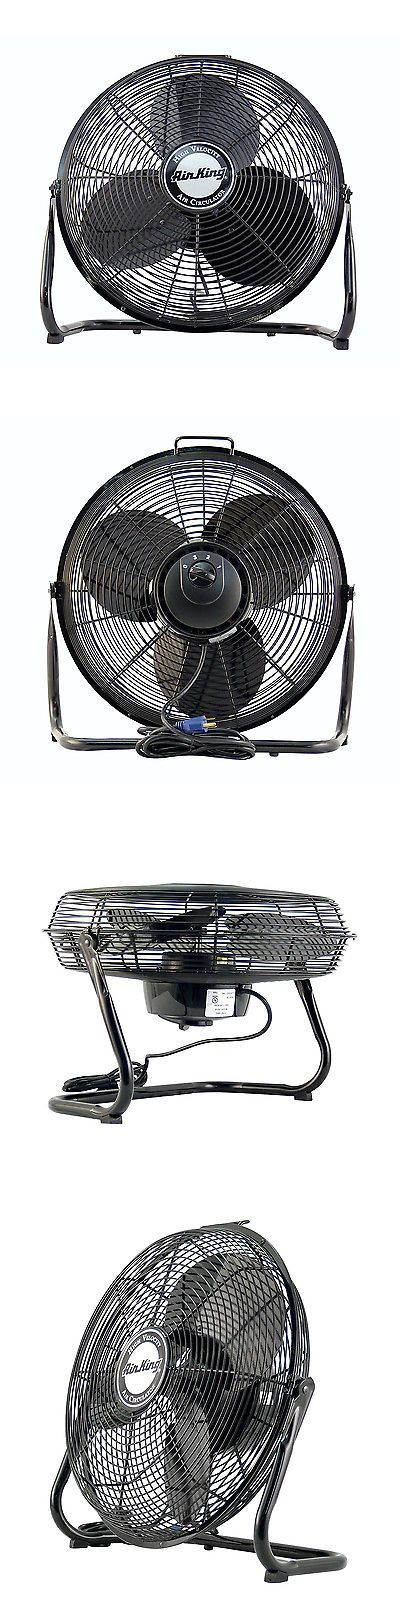 Portable Fans 20612: Air King 3 Speed 1 20 Hp 120 Volt 14 Inch Enclosed Pivoting Floor Fan   9214 -> BUY IT NOW ONLY: $79.99 on eBay!